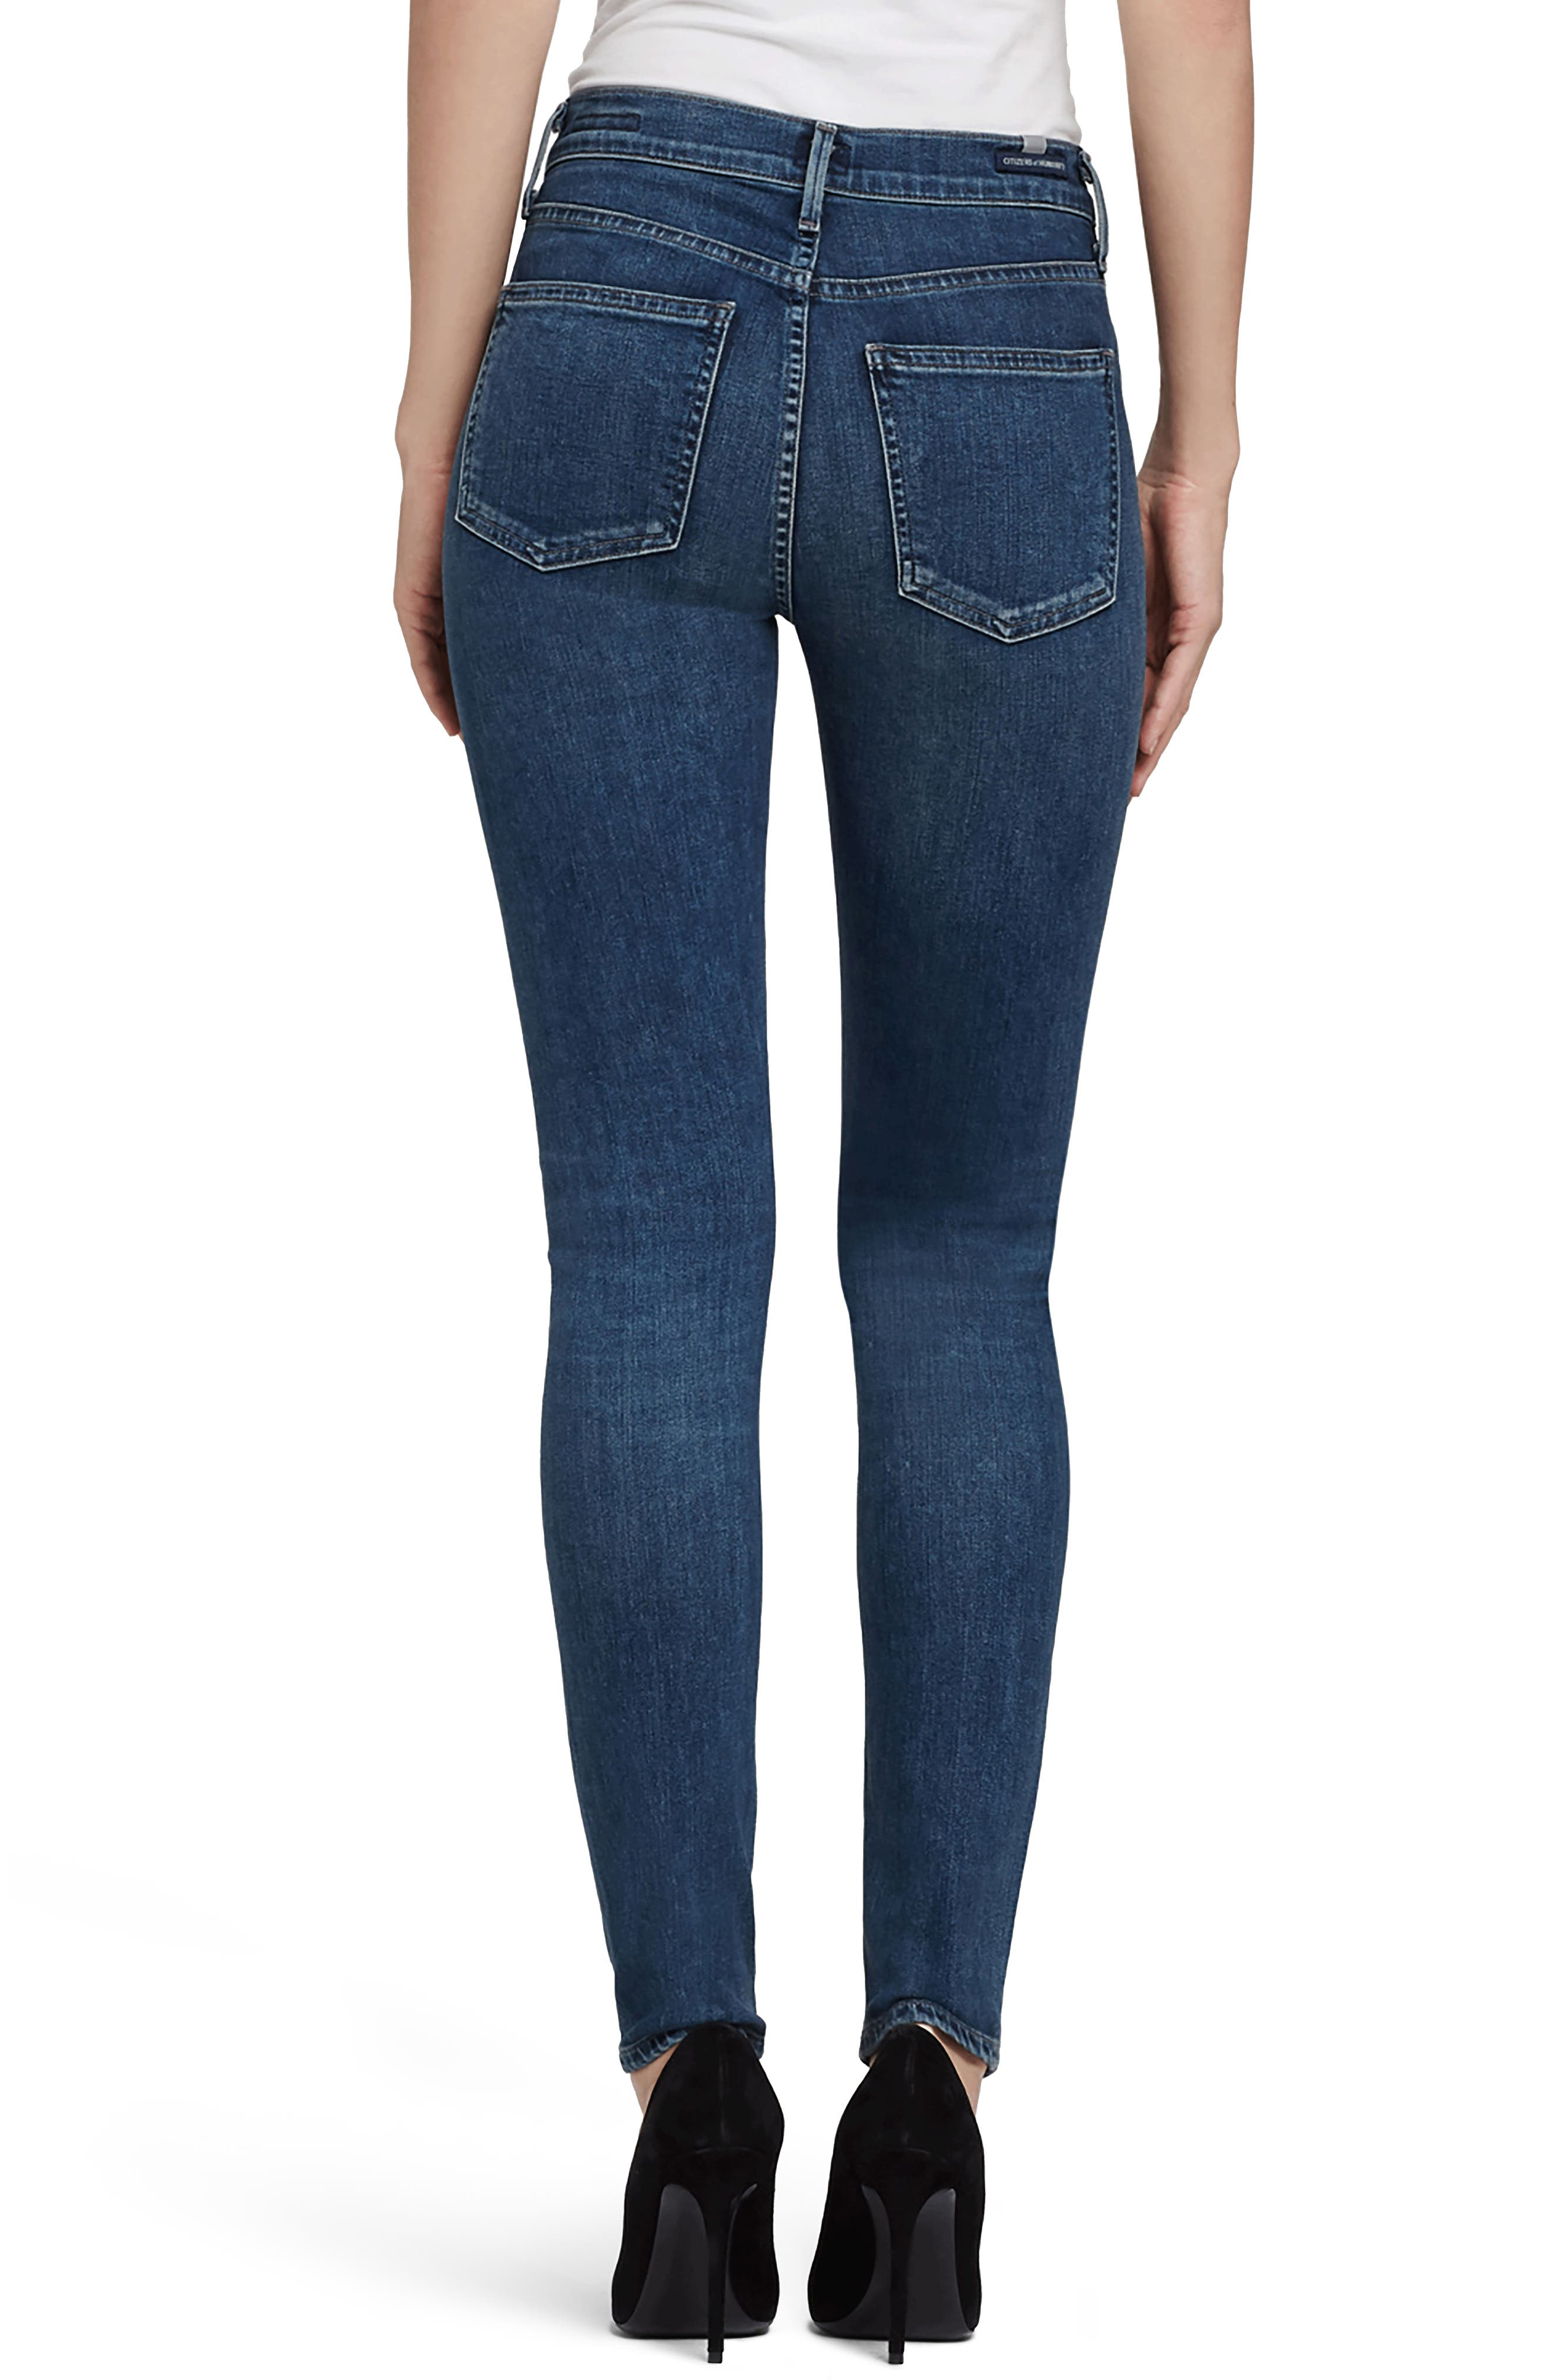 CITIZENS OF HUMANITY,                             Rocket High Waist Skinny Jeans,                             Alternate thumbnail 2, color,                             430